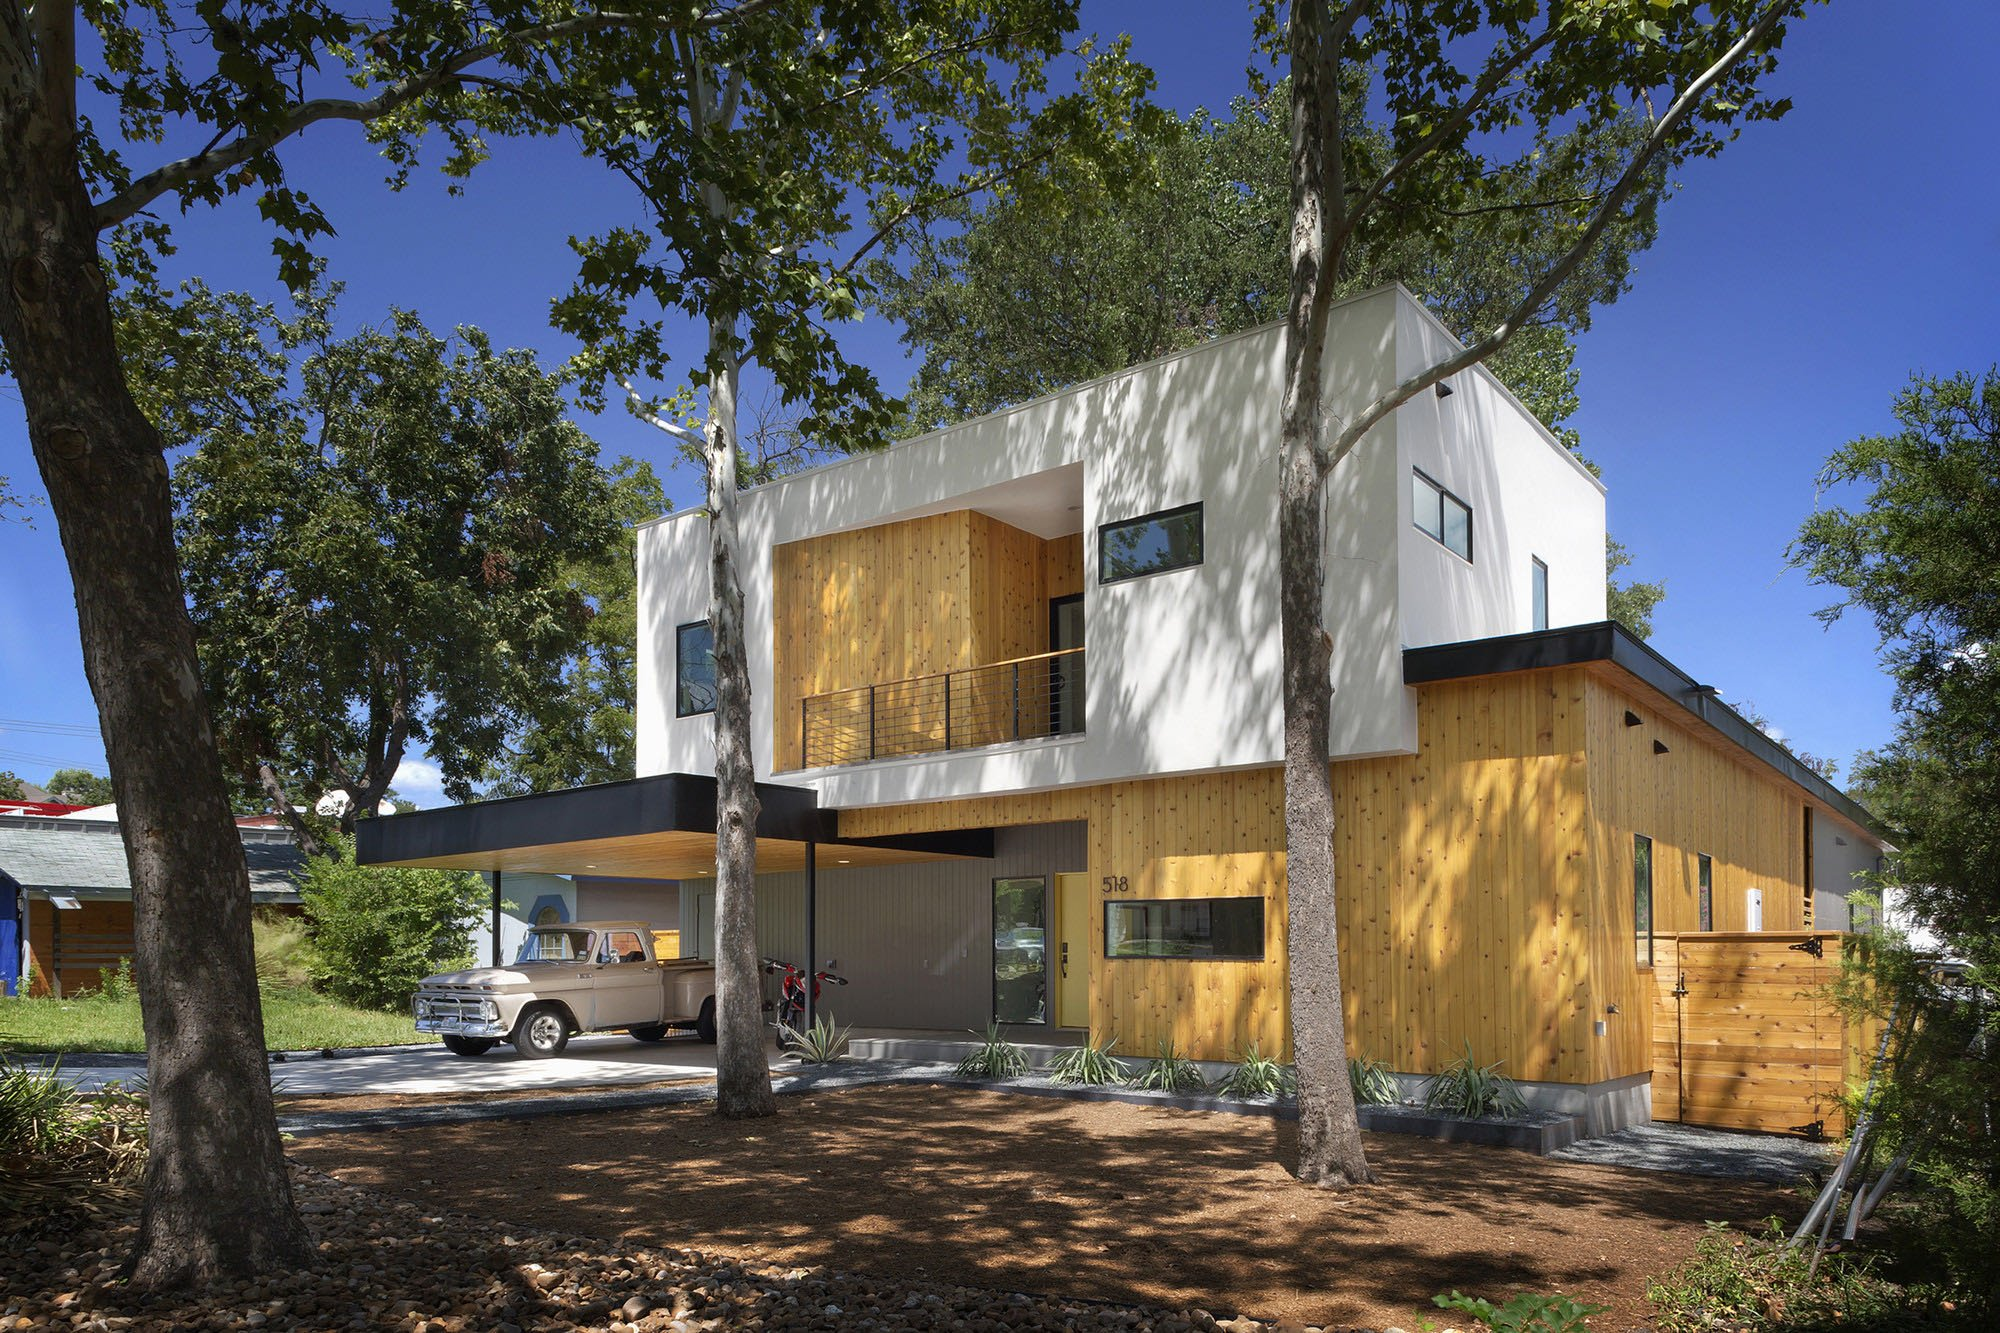 Austin Modern Tree House - Matt Fajkus Architecture - exterior side view